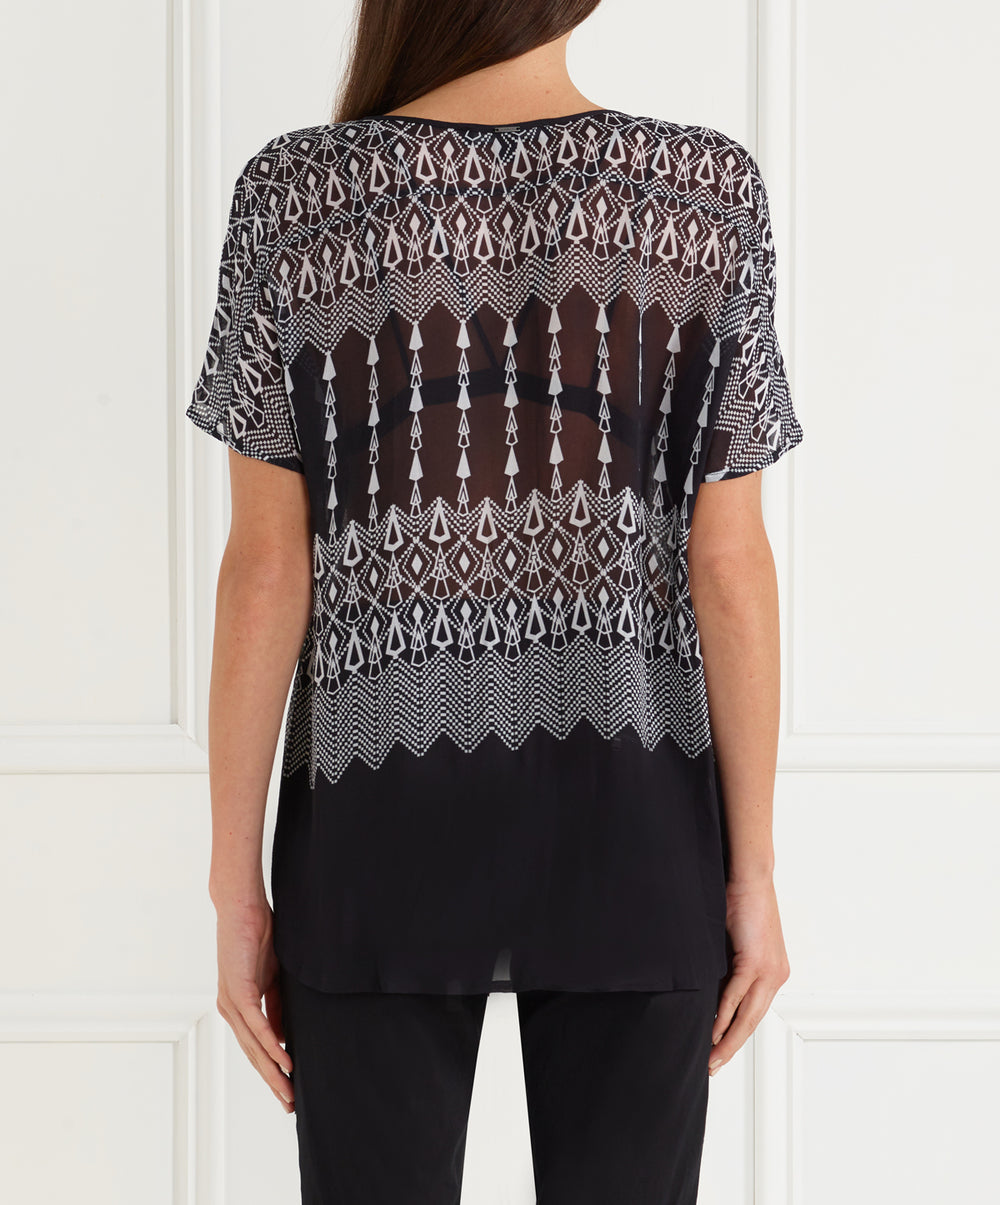 Lovelock Top